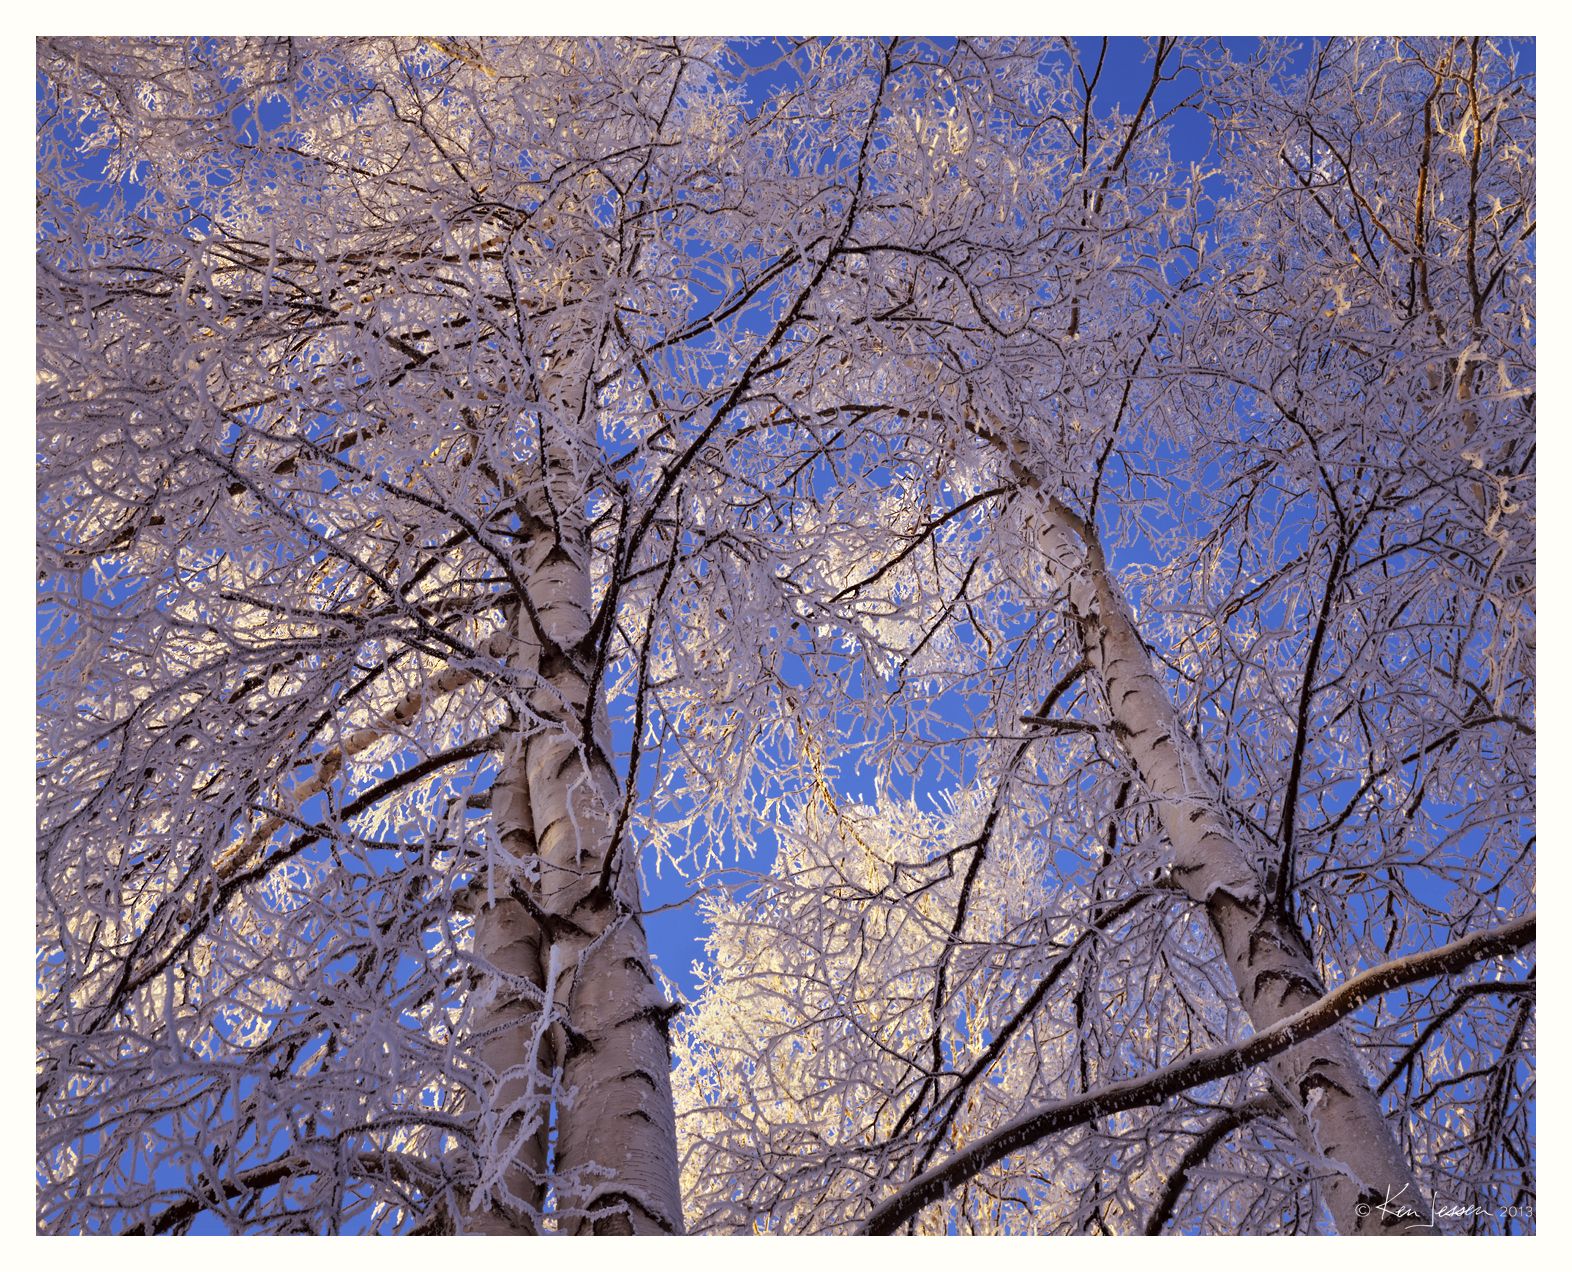 Snowy Birches at -48F